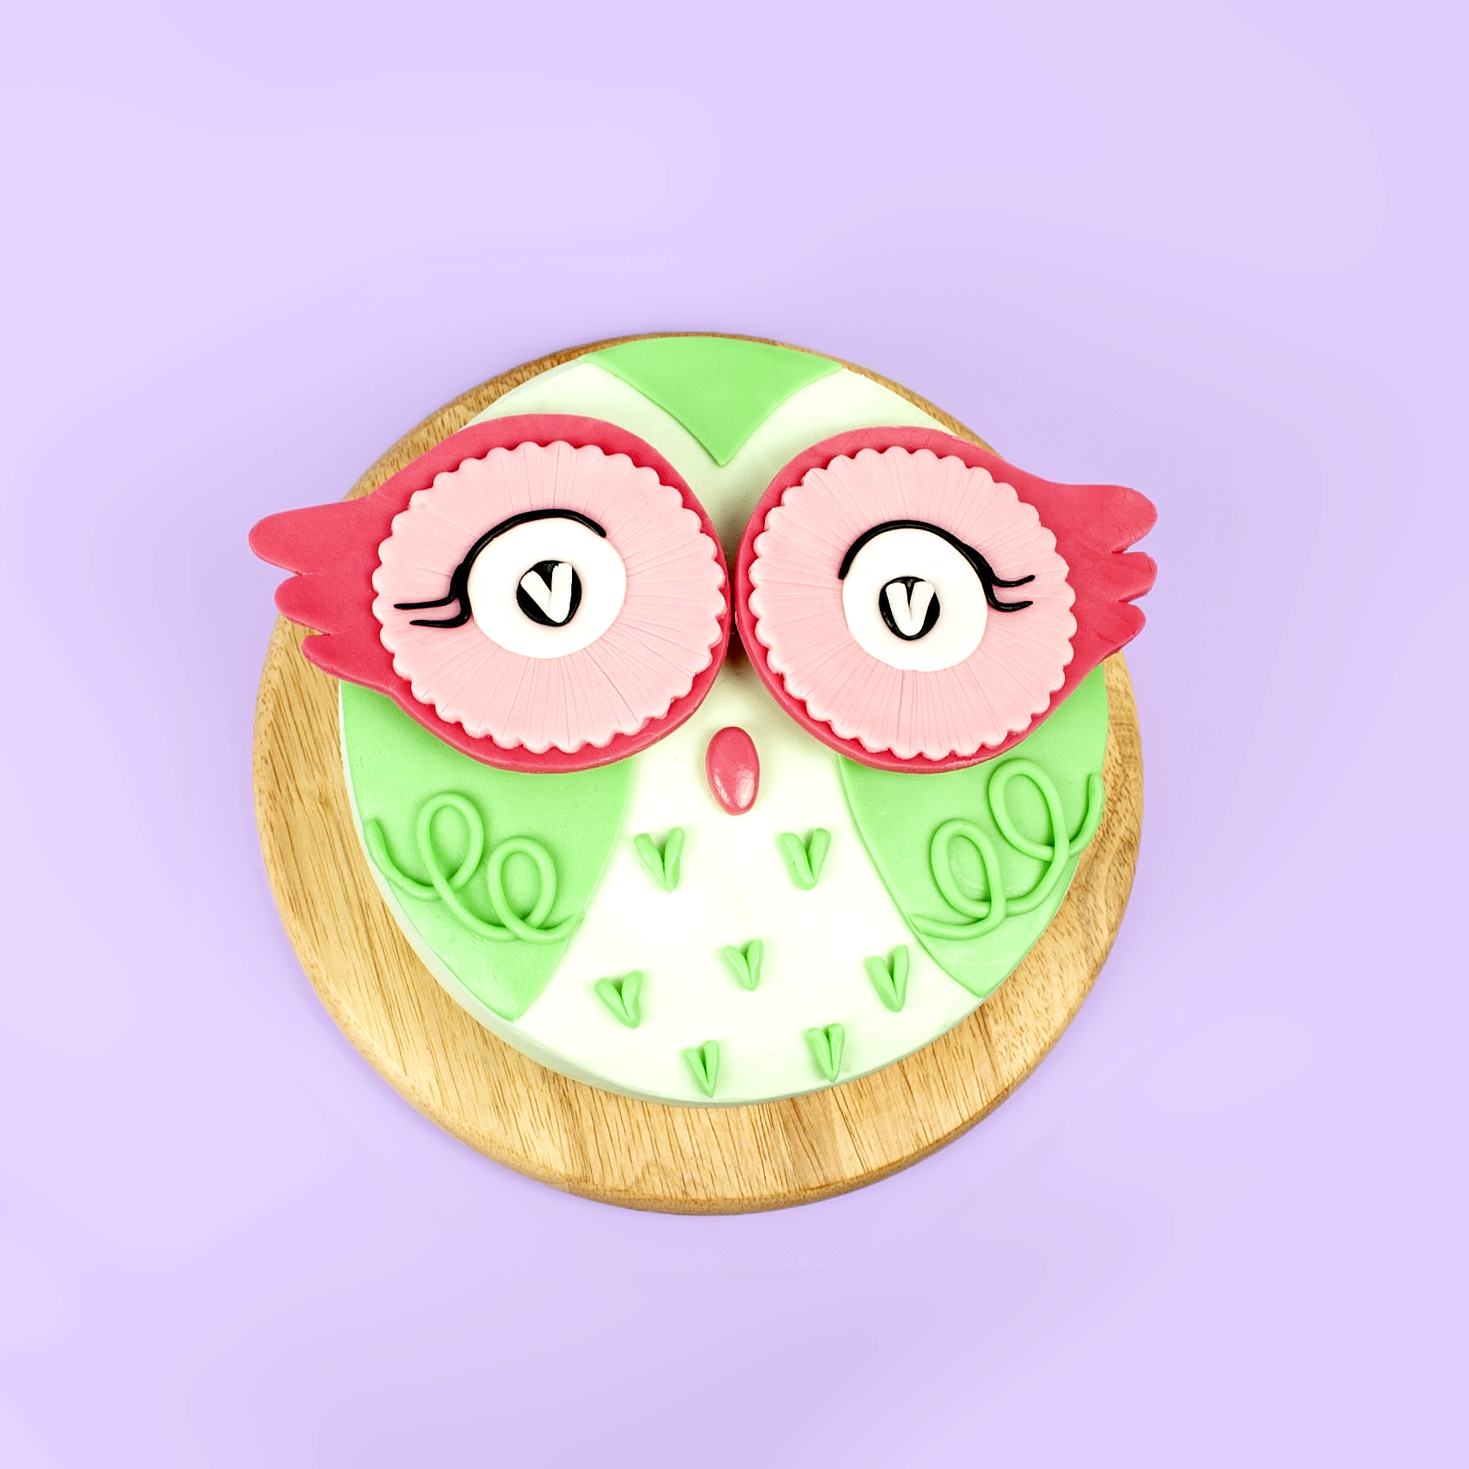 DIY Cute Green Owl Cake